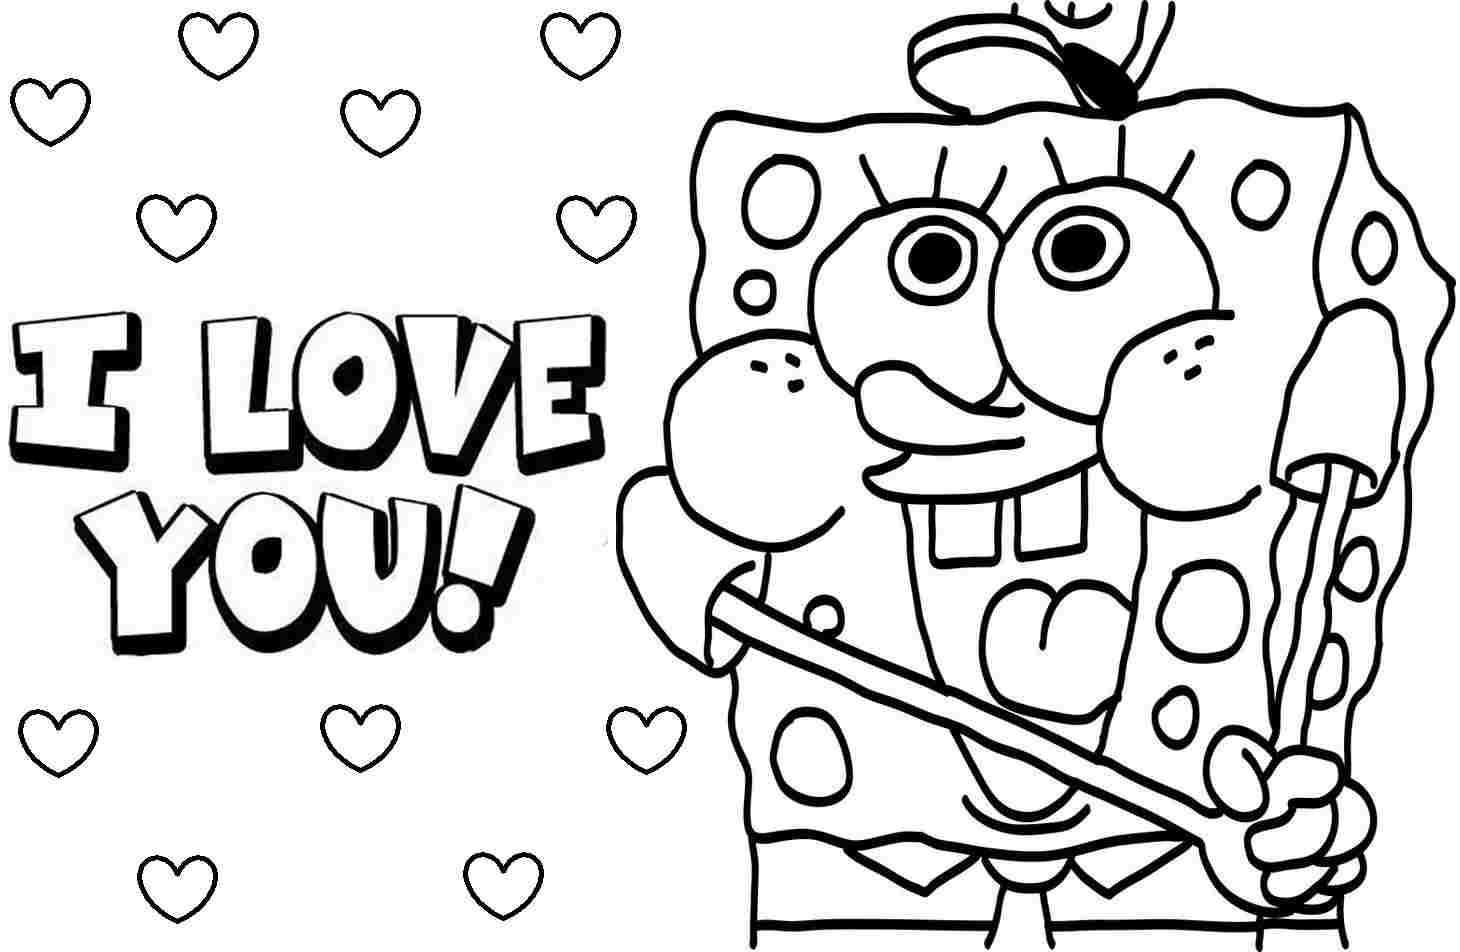 Valentines Printable Coloring Pages to Print 1t - Save it to your computer